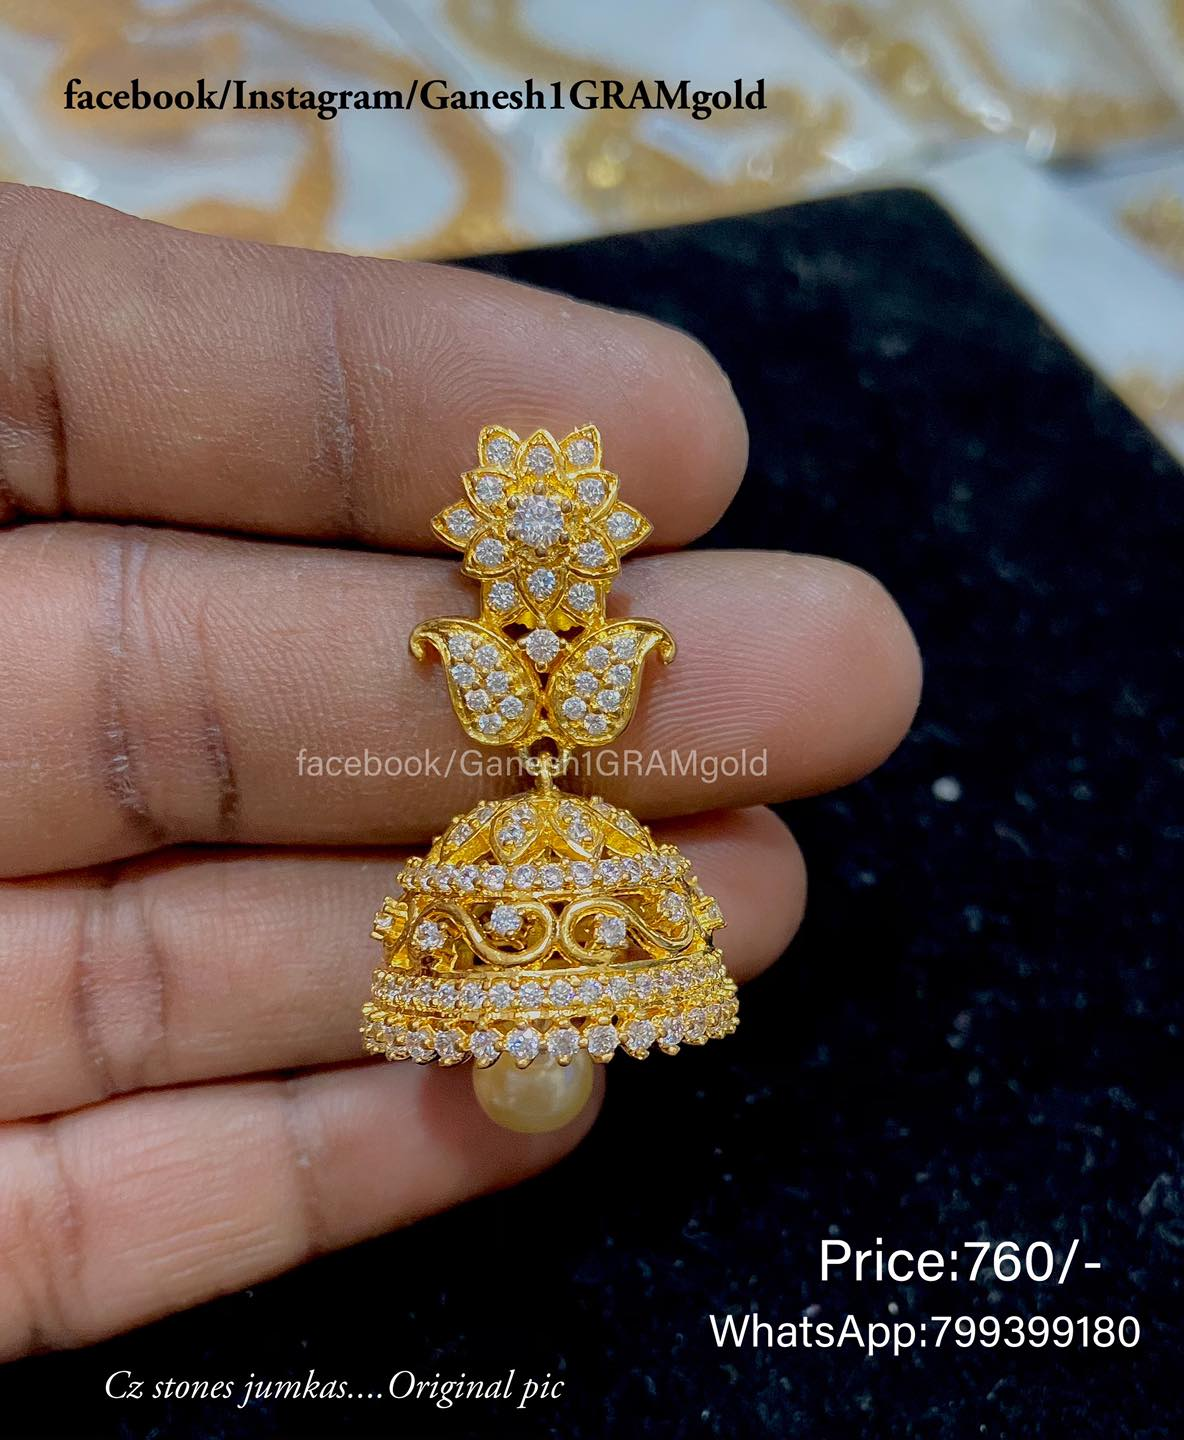 Cz stones jumkas...Original pic